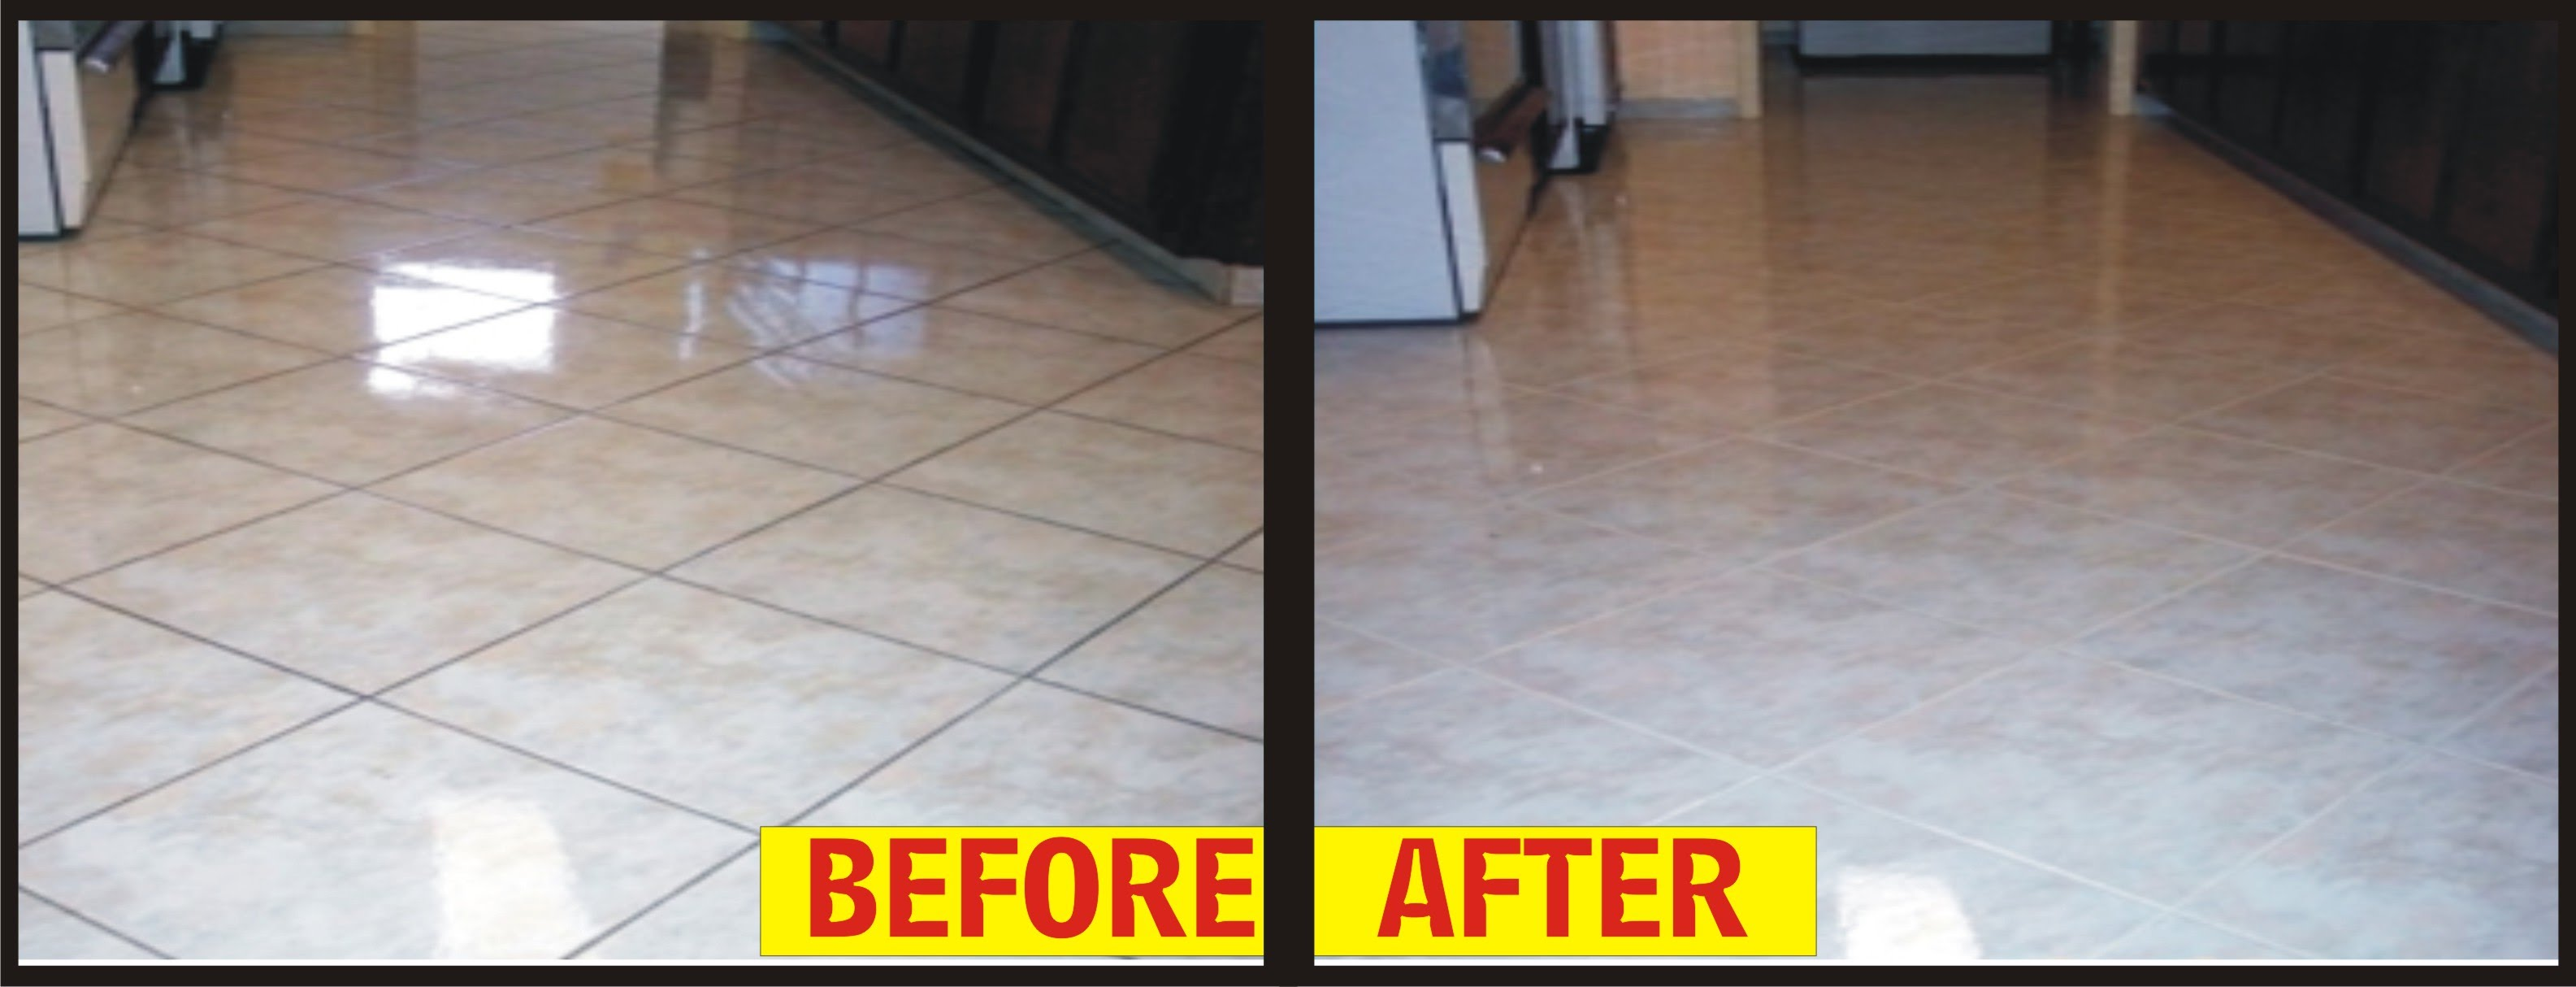 Tile Grout Cleaning  Tile Grout Cleaning  Carpet Cleaner  Linoleum Vinyl Clean in San Diego